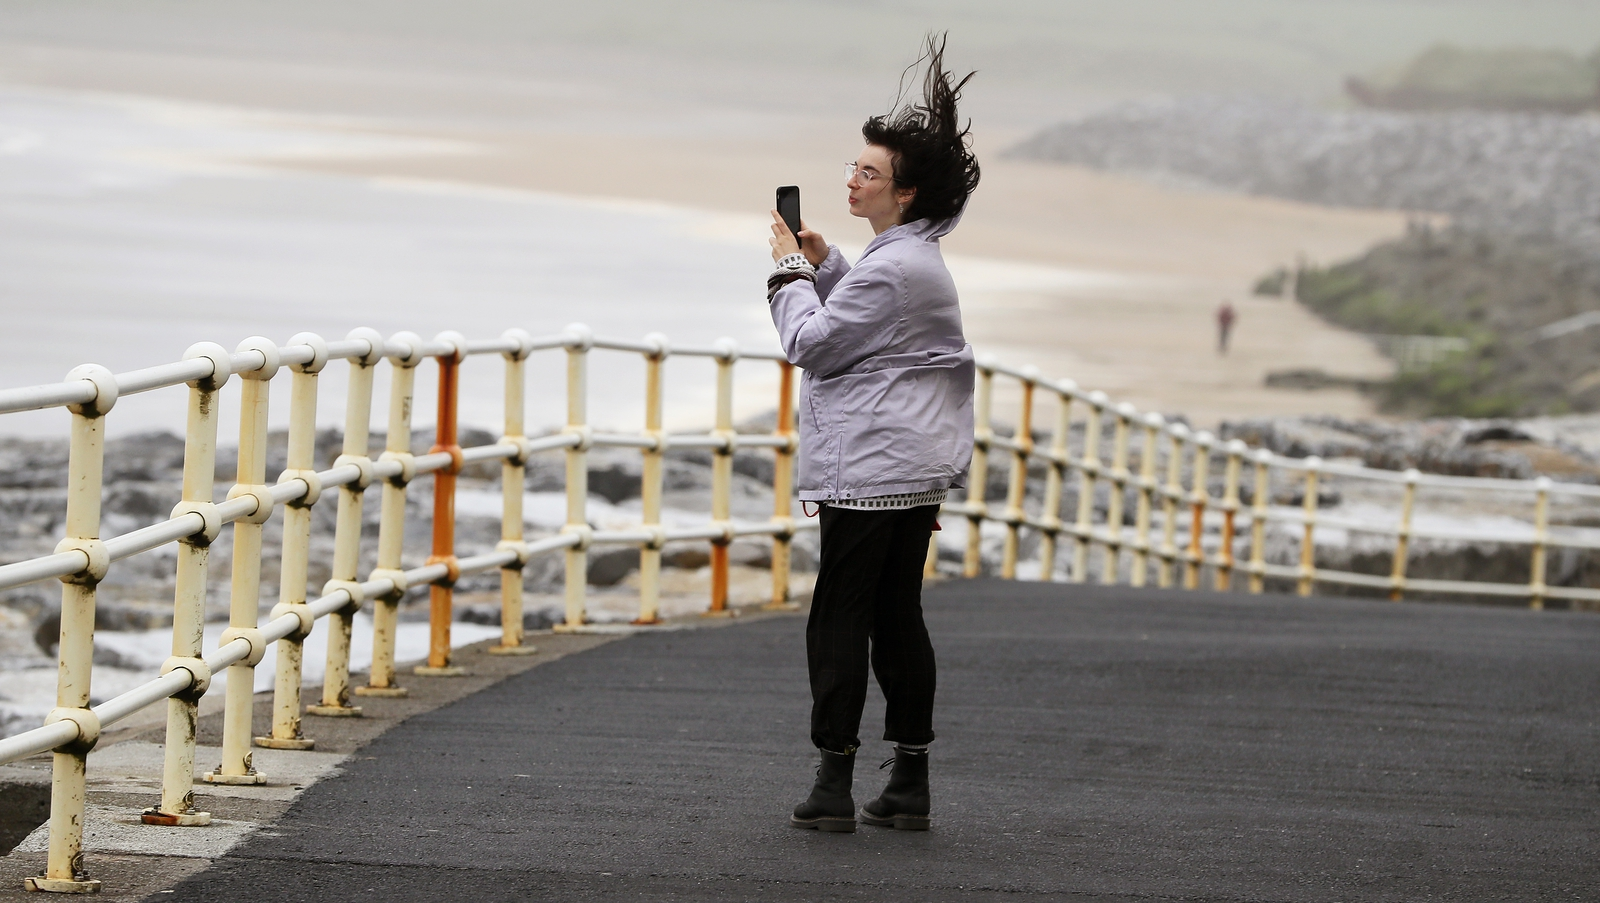 Yellow warnings issued as strong winds expected